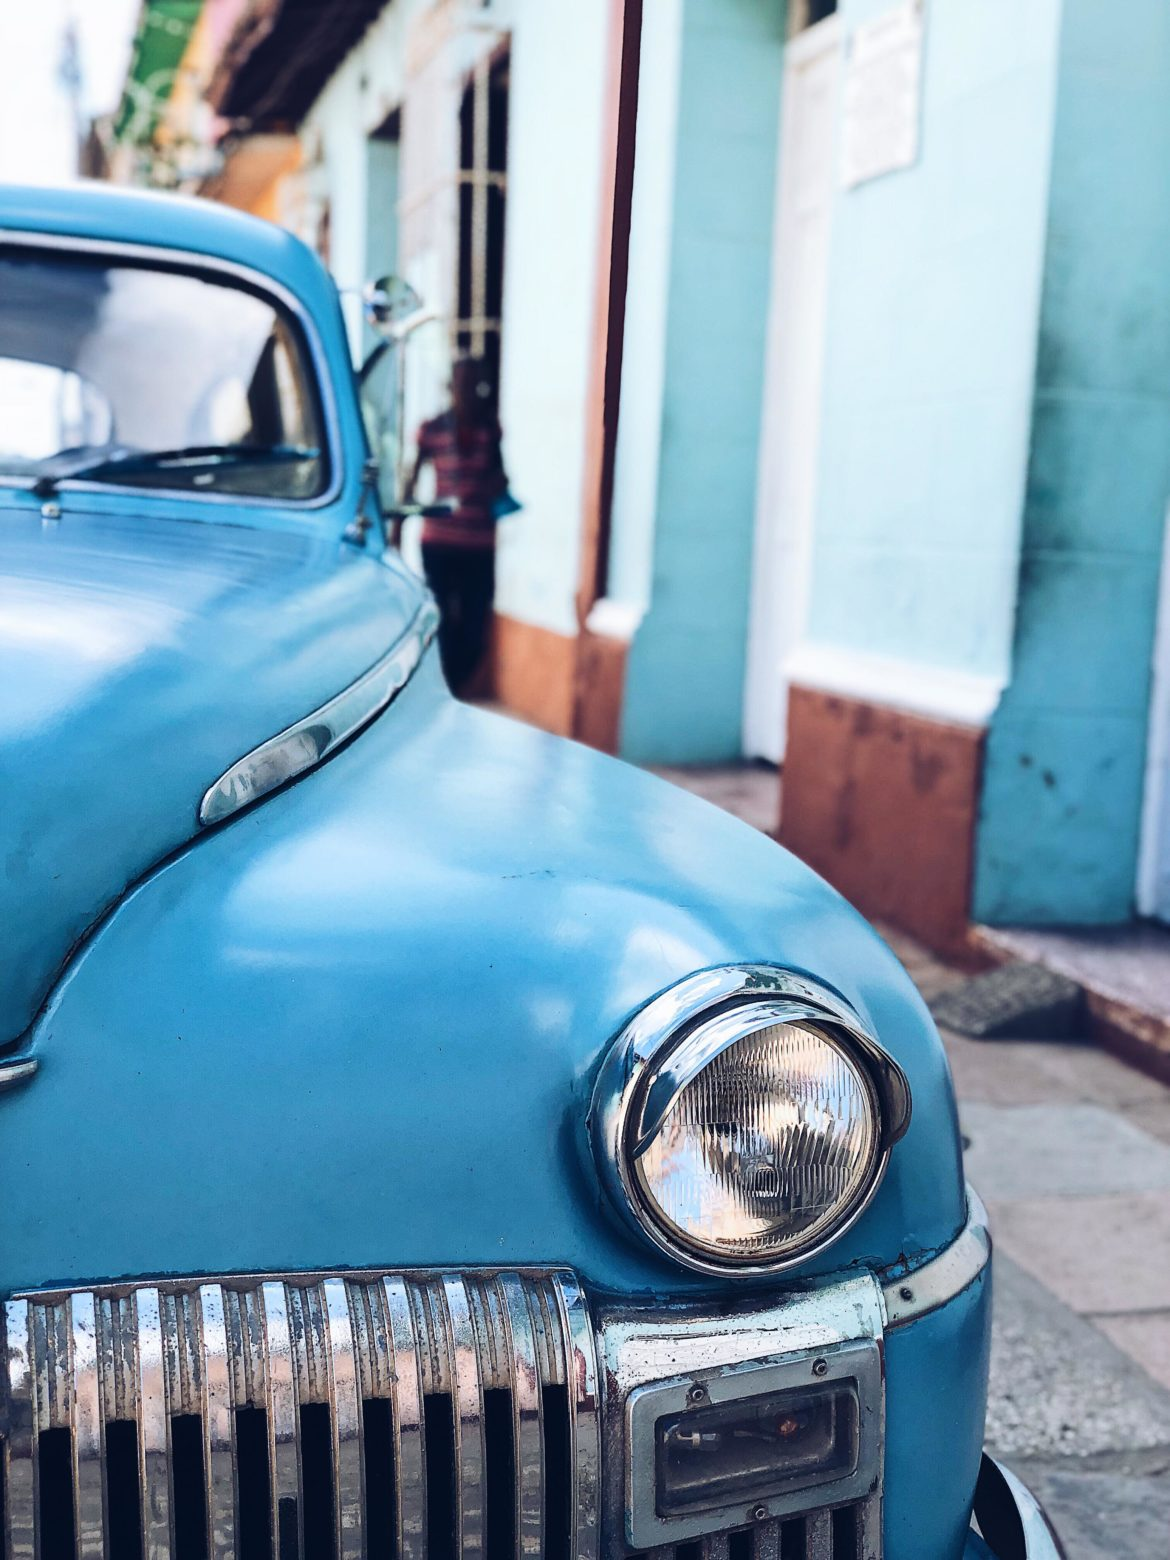 Old Car in Trinidad - Best things to do in Cuba